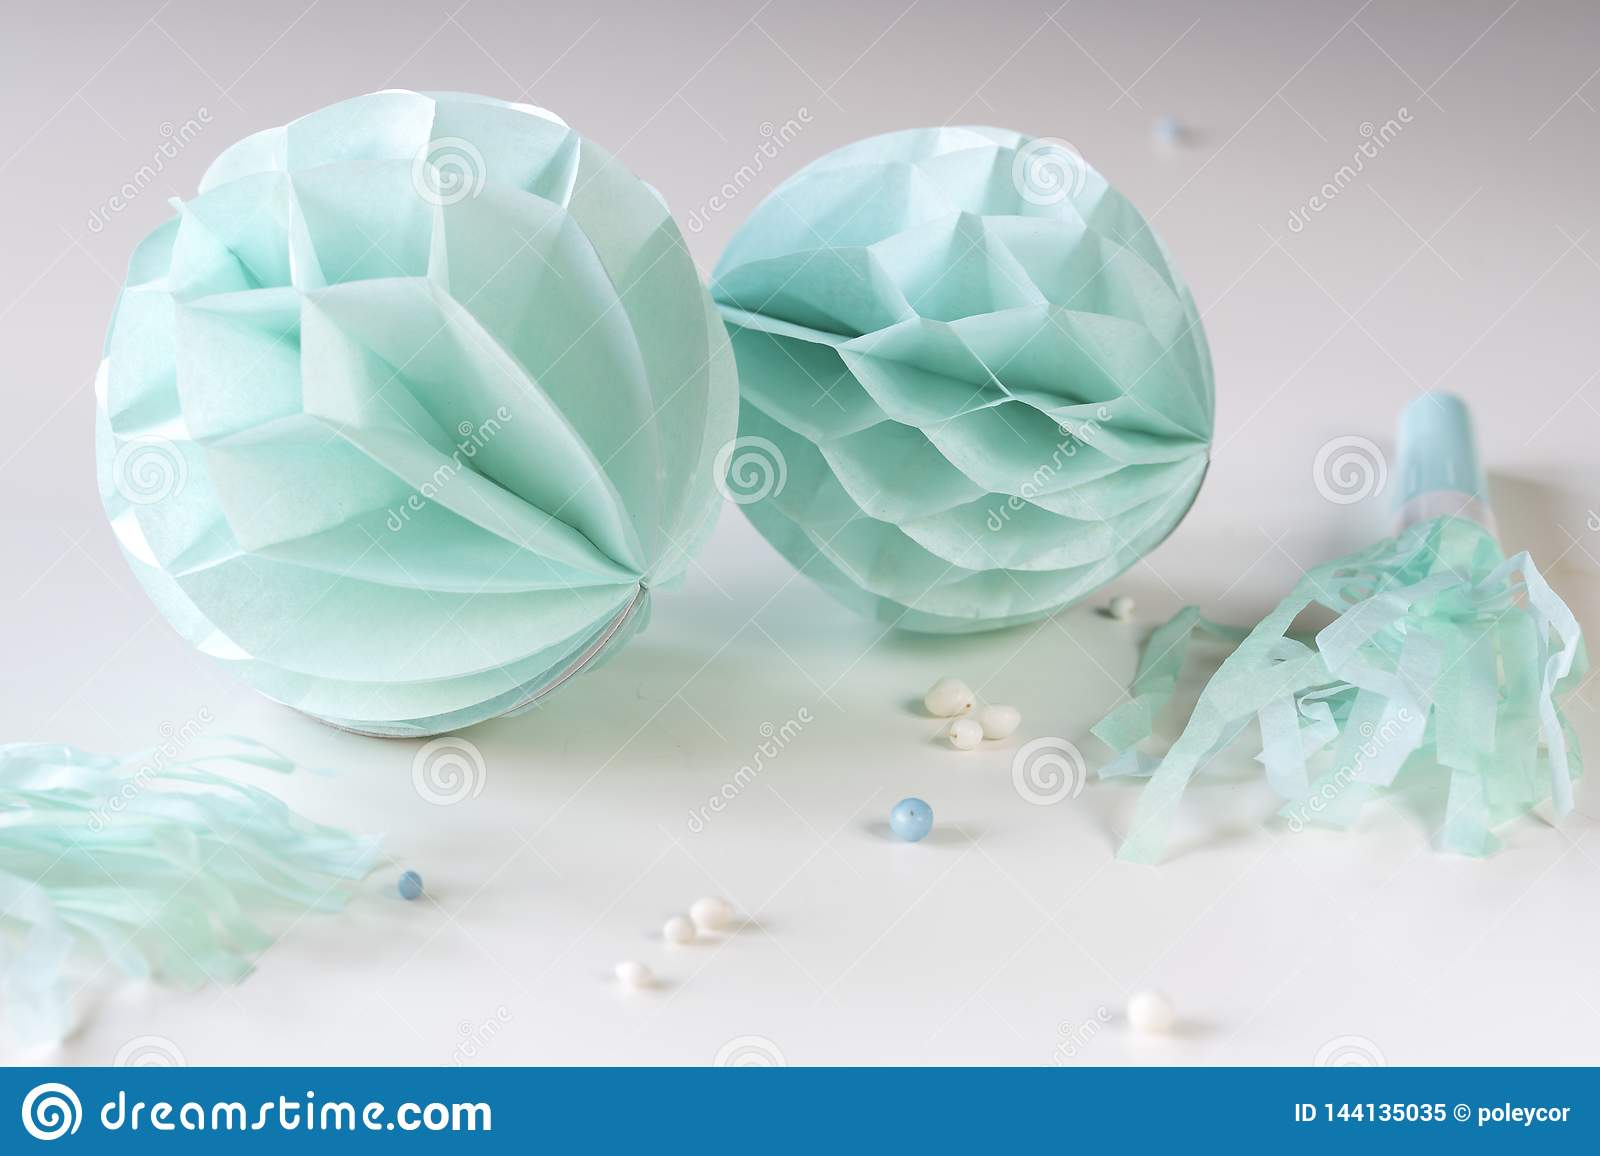 Blue honeycombs with paper trumpets on white table